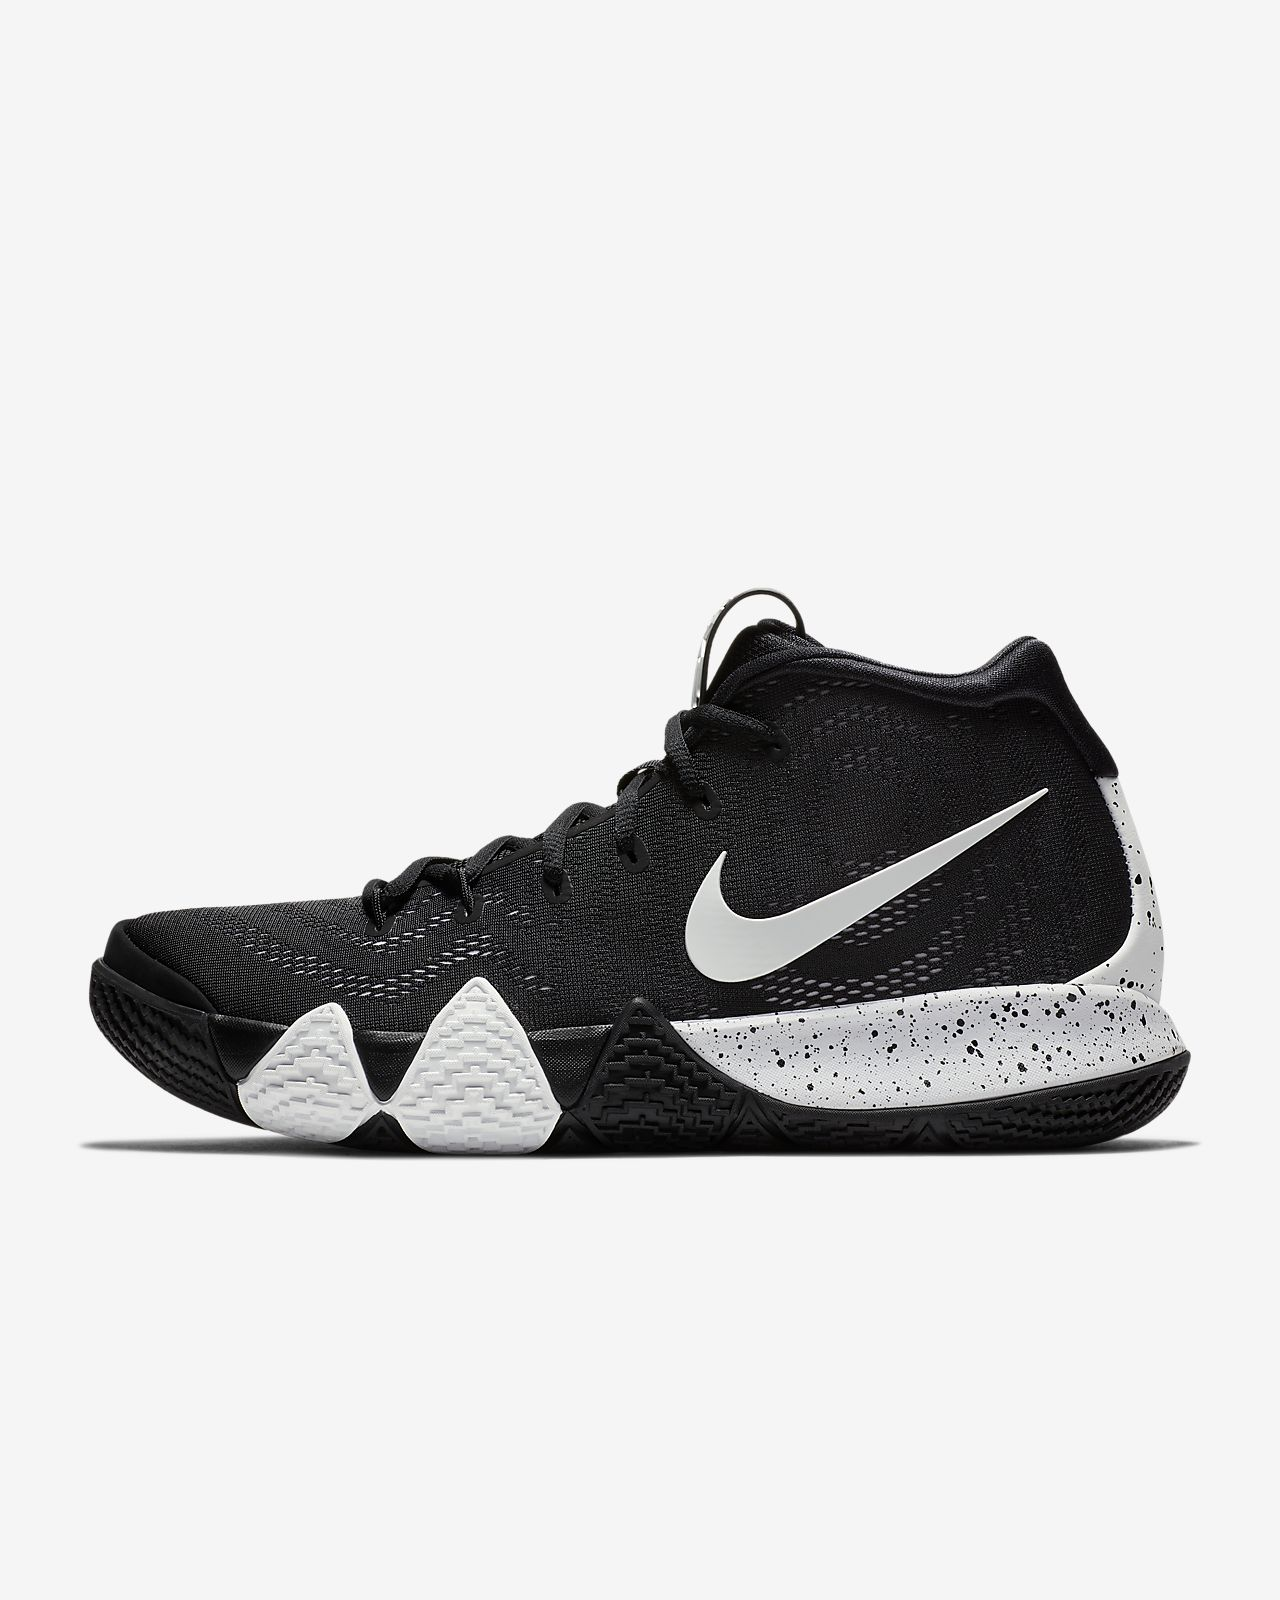 Kyrie 4 (Team) Basketball Shoe